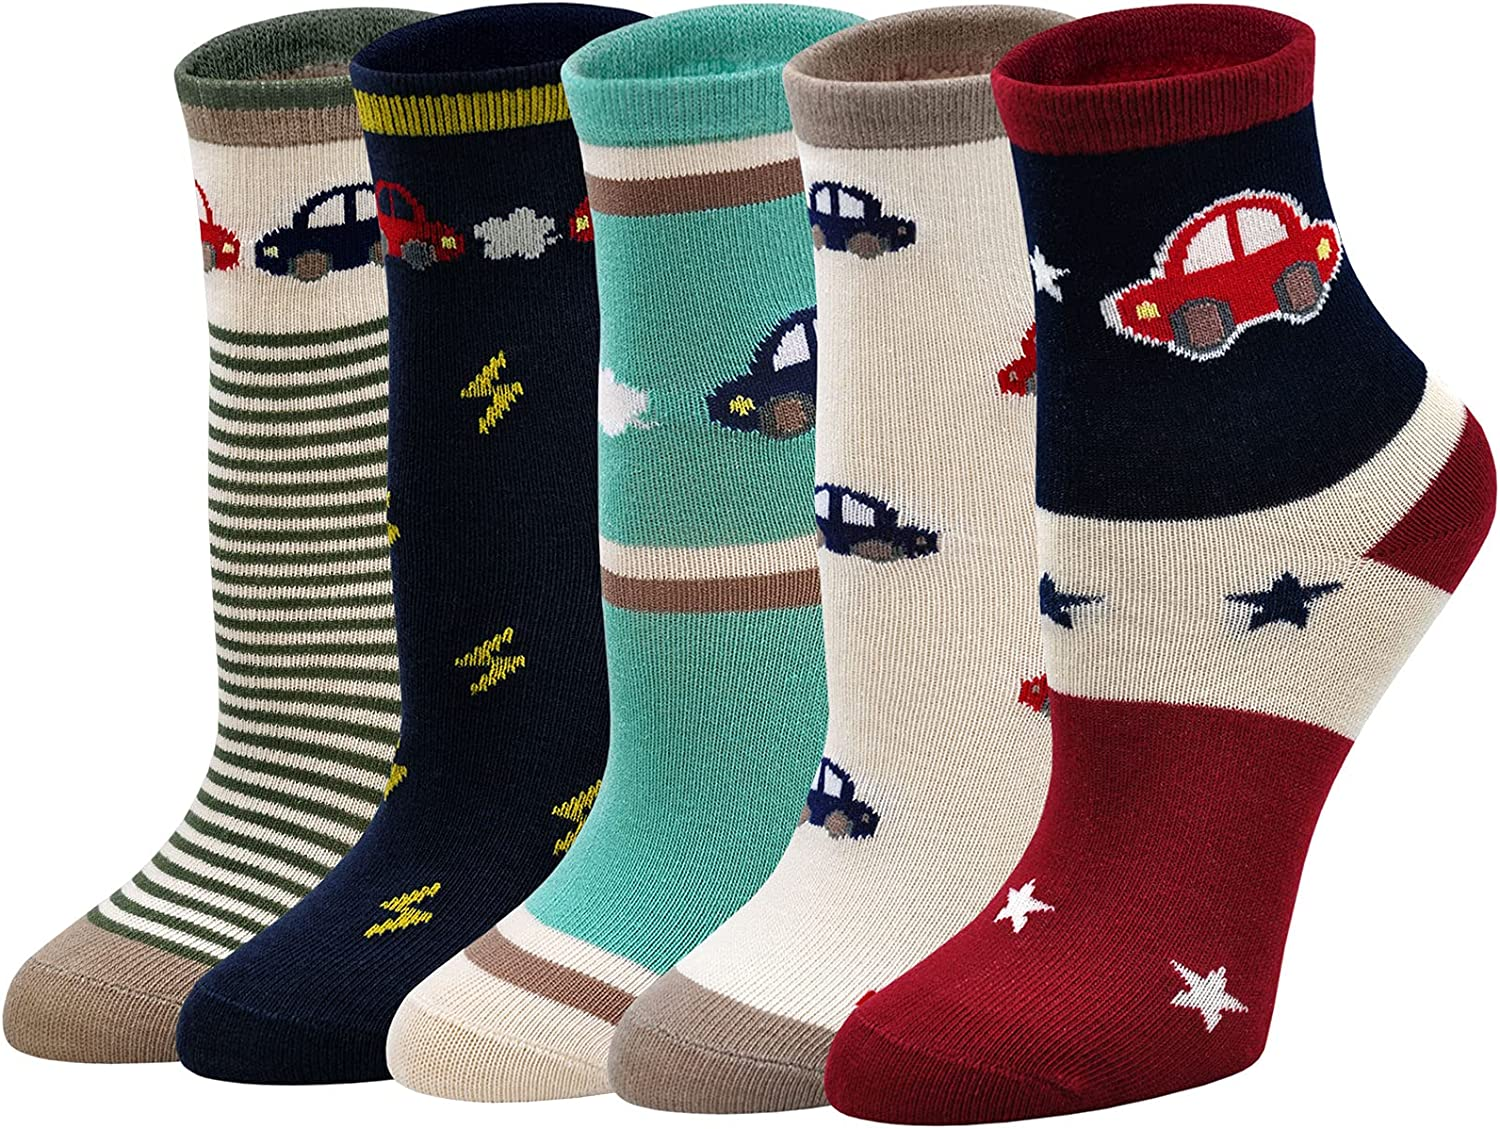 Artfasion Boy Sock Cartoon Pattern Casual Children Ankle Sox for Kids 5 Pairs